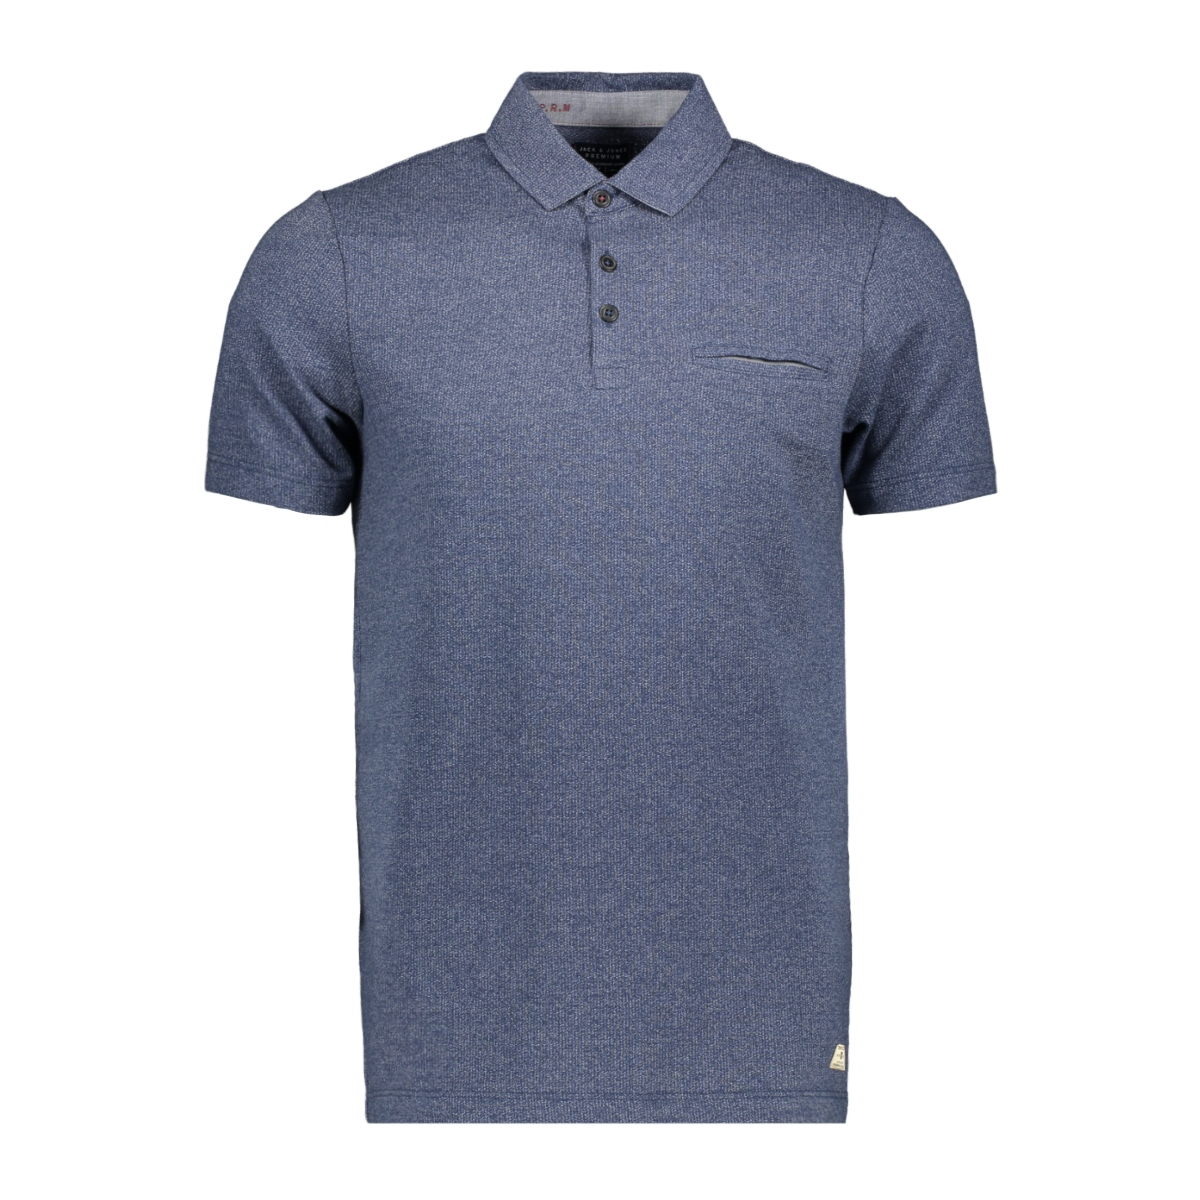 jproscar blu  polo ss 12149727 jack & jones polo navy blazer/slim fit